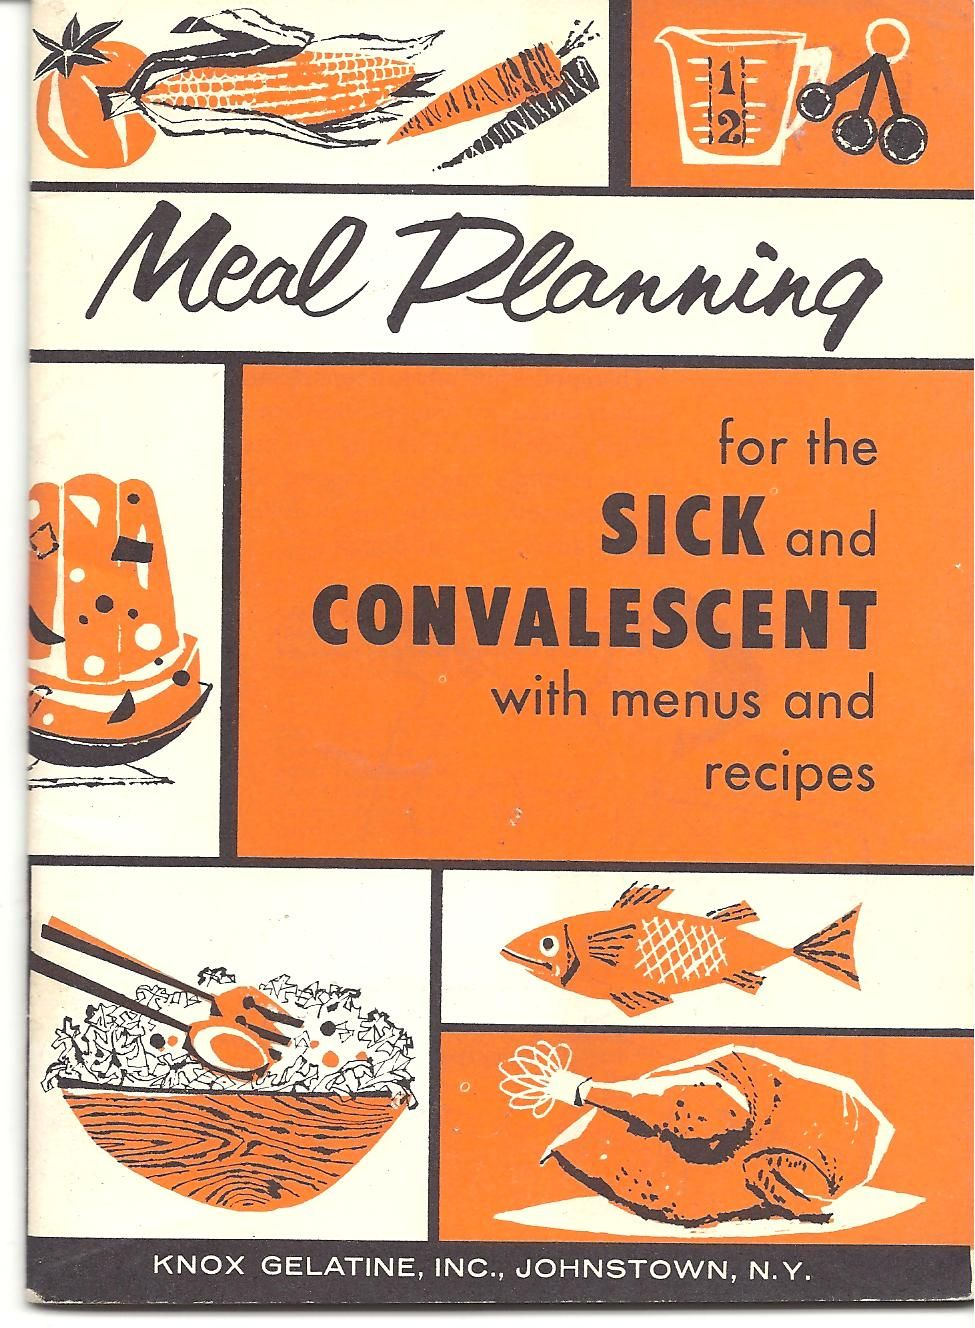 Meal Planning For The Sick And Convalescent With Menus And Recipes 1961 Produced By The Knox Gelatine Company Meal Planning Vintage Recipes Vintage Cookbooks